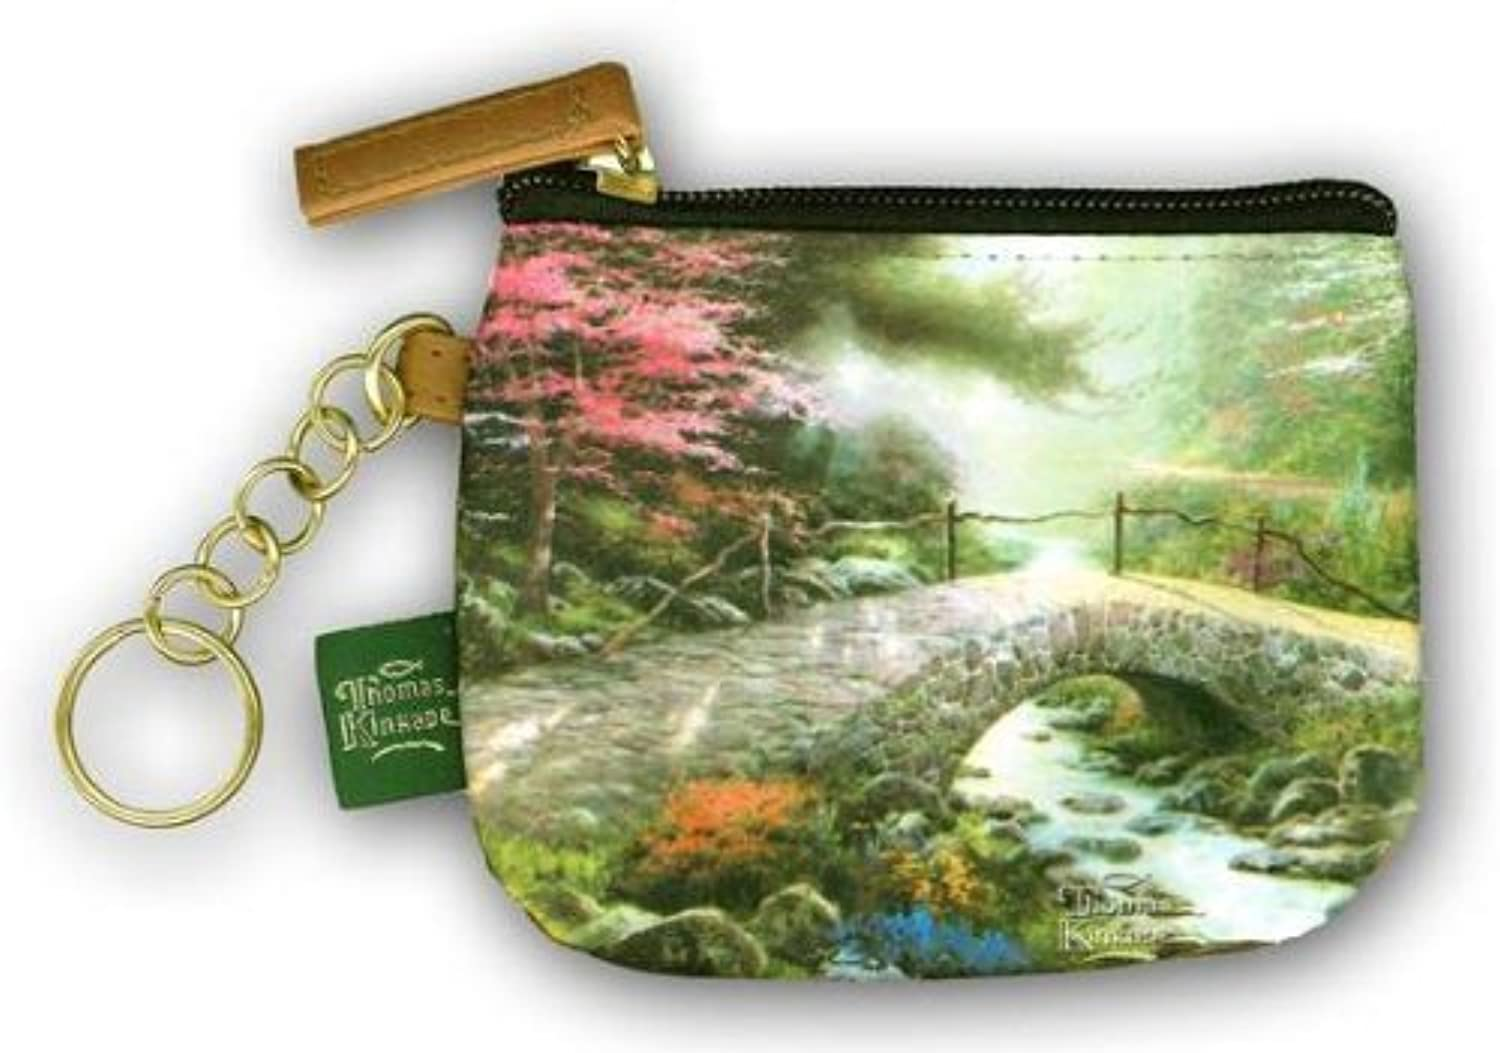 Kinkade – Kinkade Coin Purse – Bridge Of Faith by Enesco – 148605